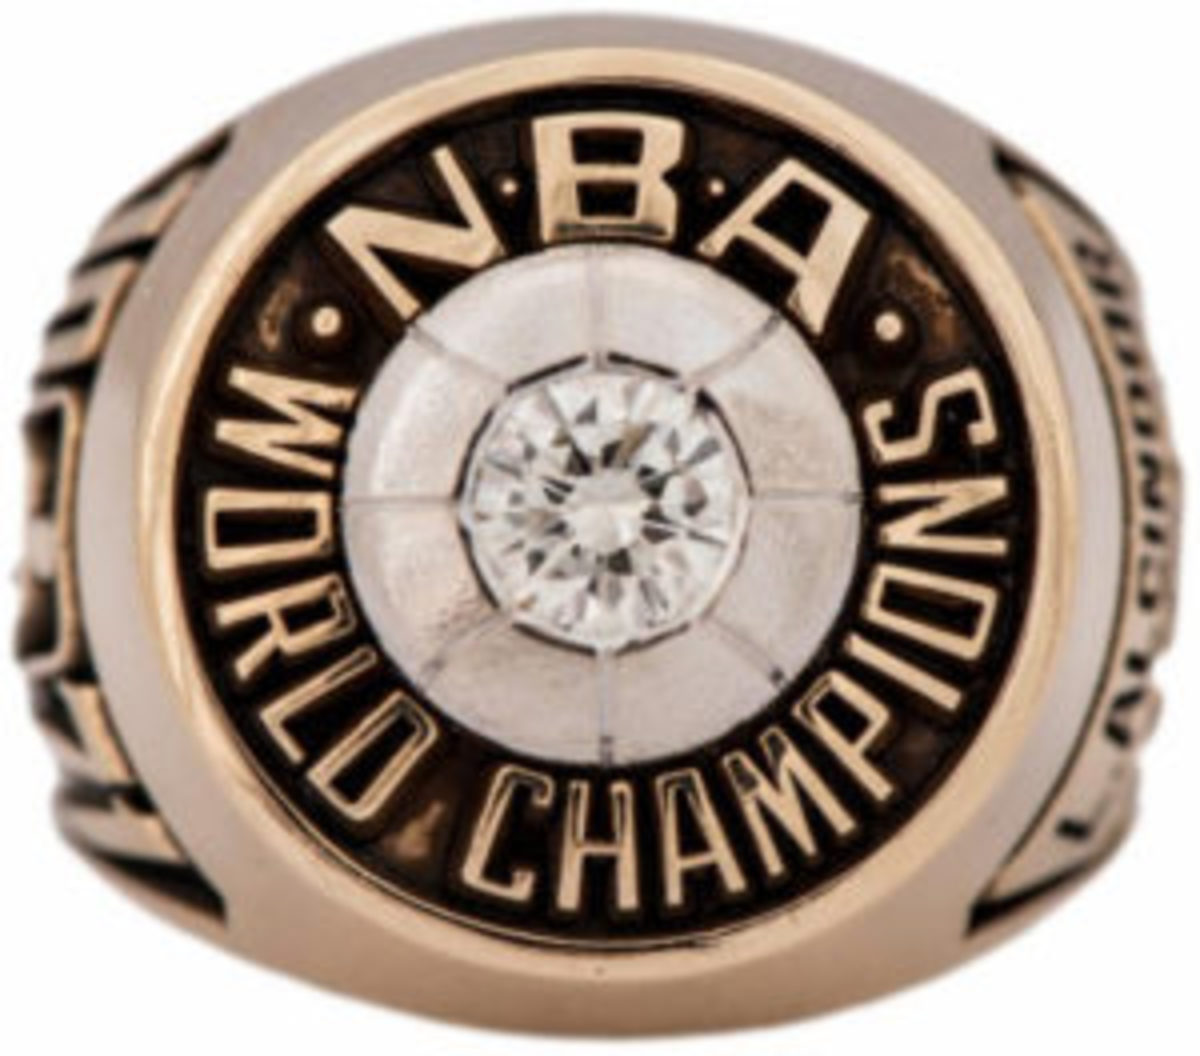 Kareem Abdul-Jabbar's 1970-71 Milwaukee Bucks championship ring (Lew Alcindor) sold for $153,437. (Image courtesy Goldin Auctions)